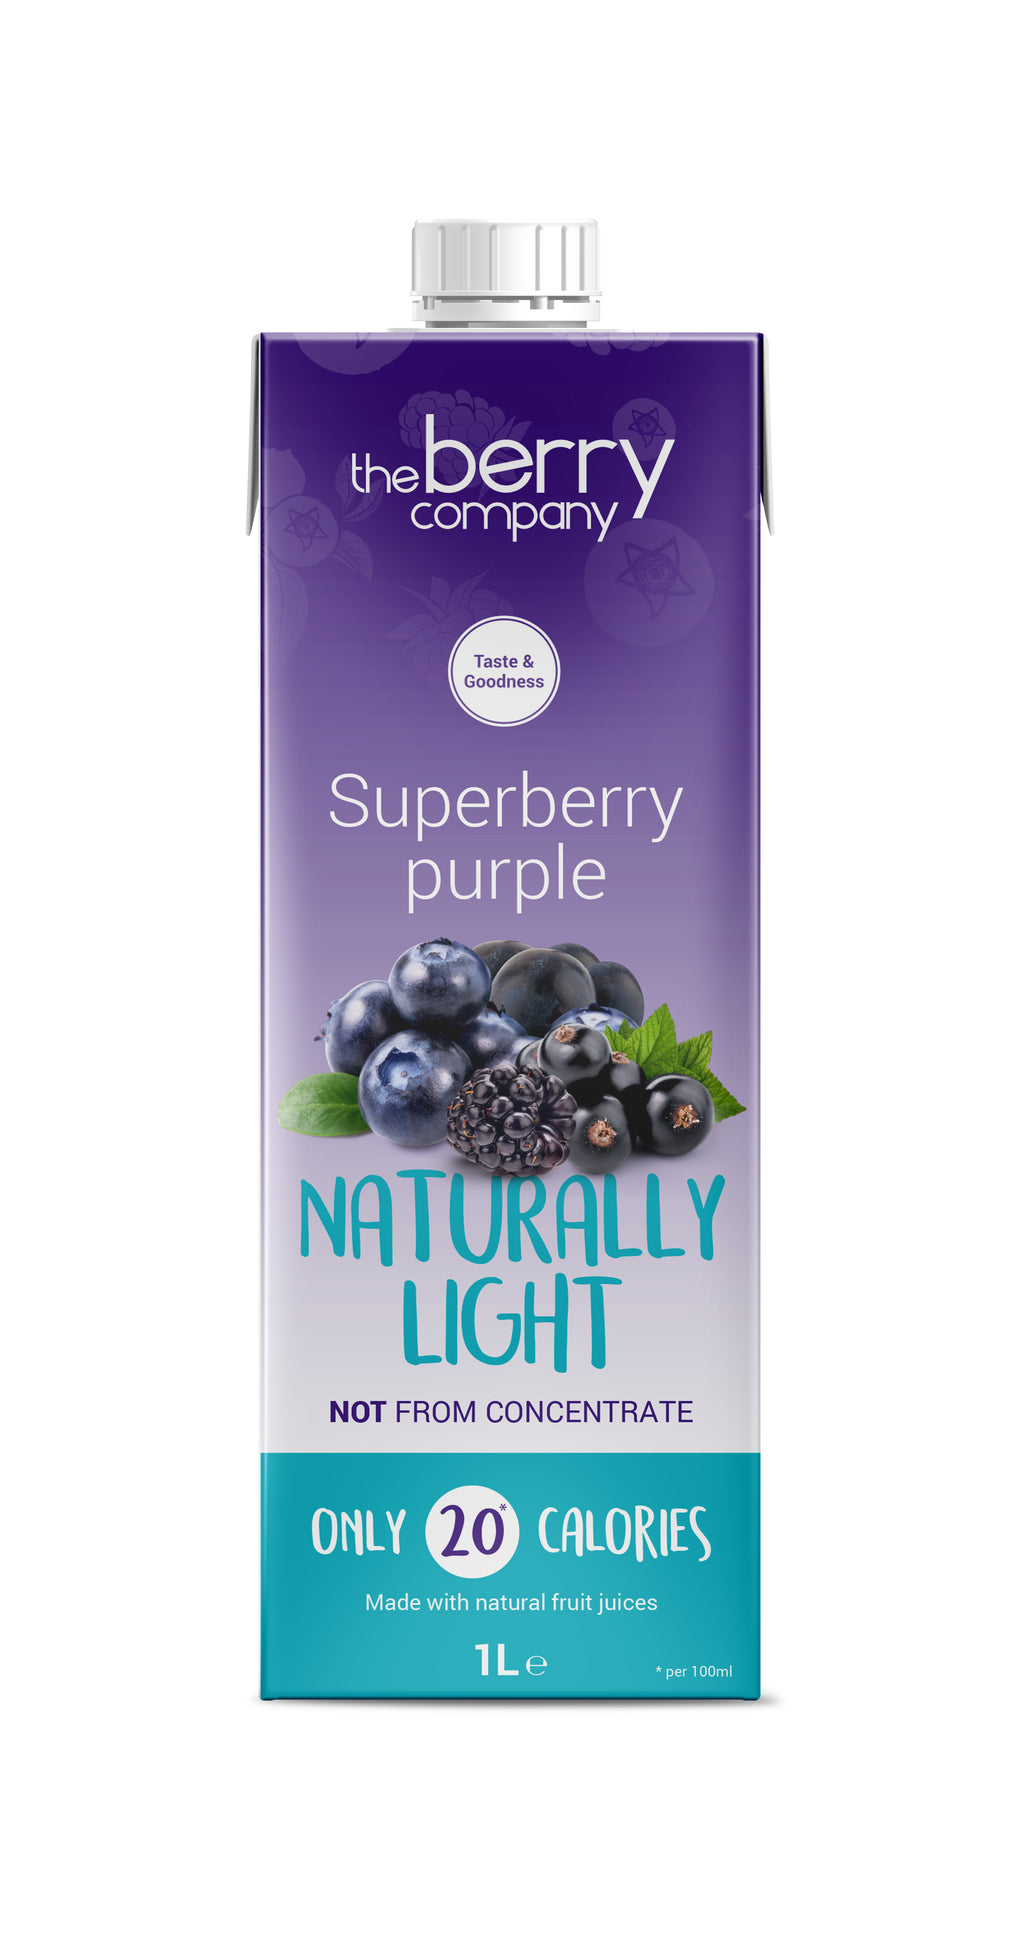 The Berry Company Superberry Purple Naturally Light 1L